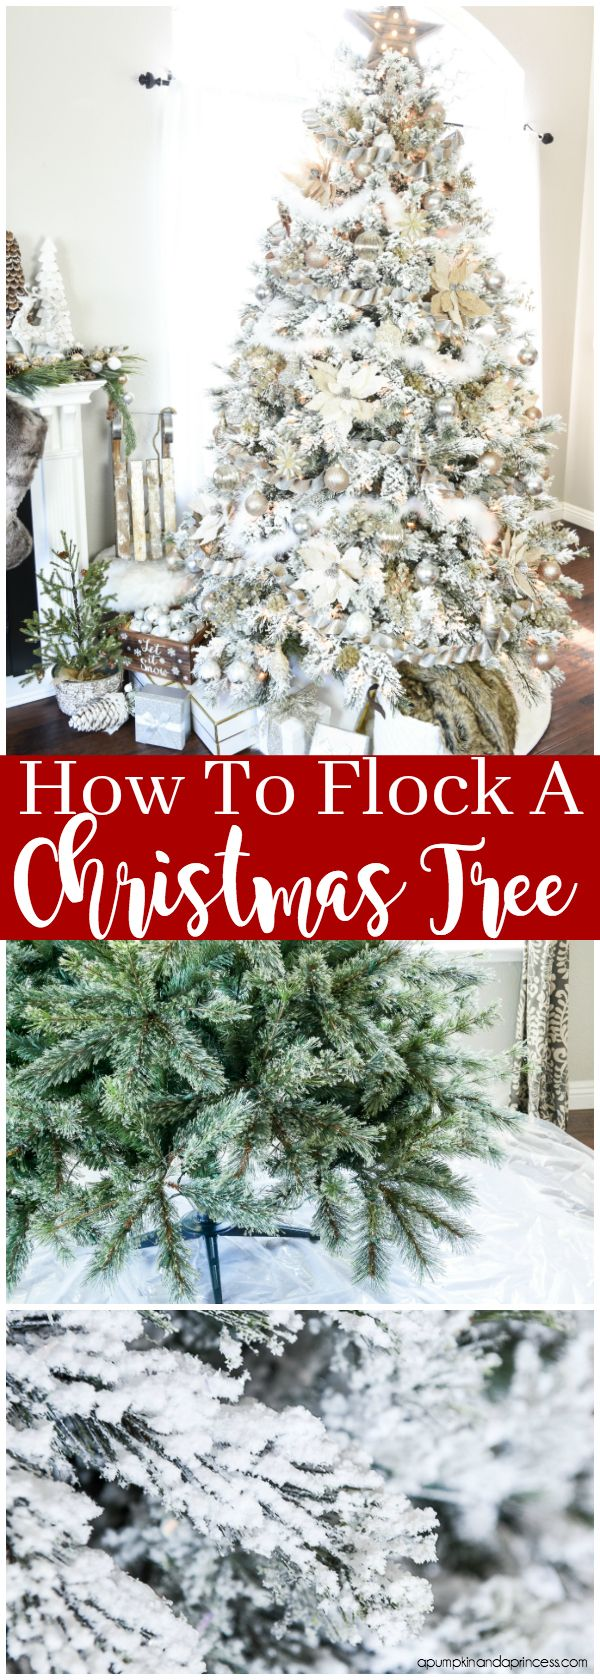 How To Flock A Christmas Tree Flocked Christmas Trees Decorated Frosted Christmas Tree Diy Christmas Tree